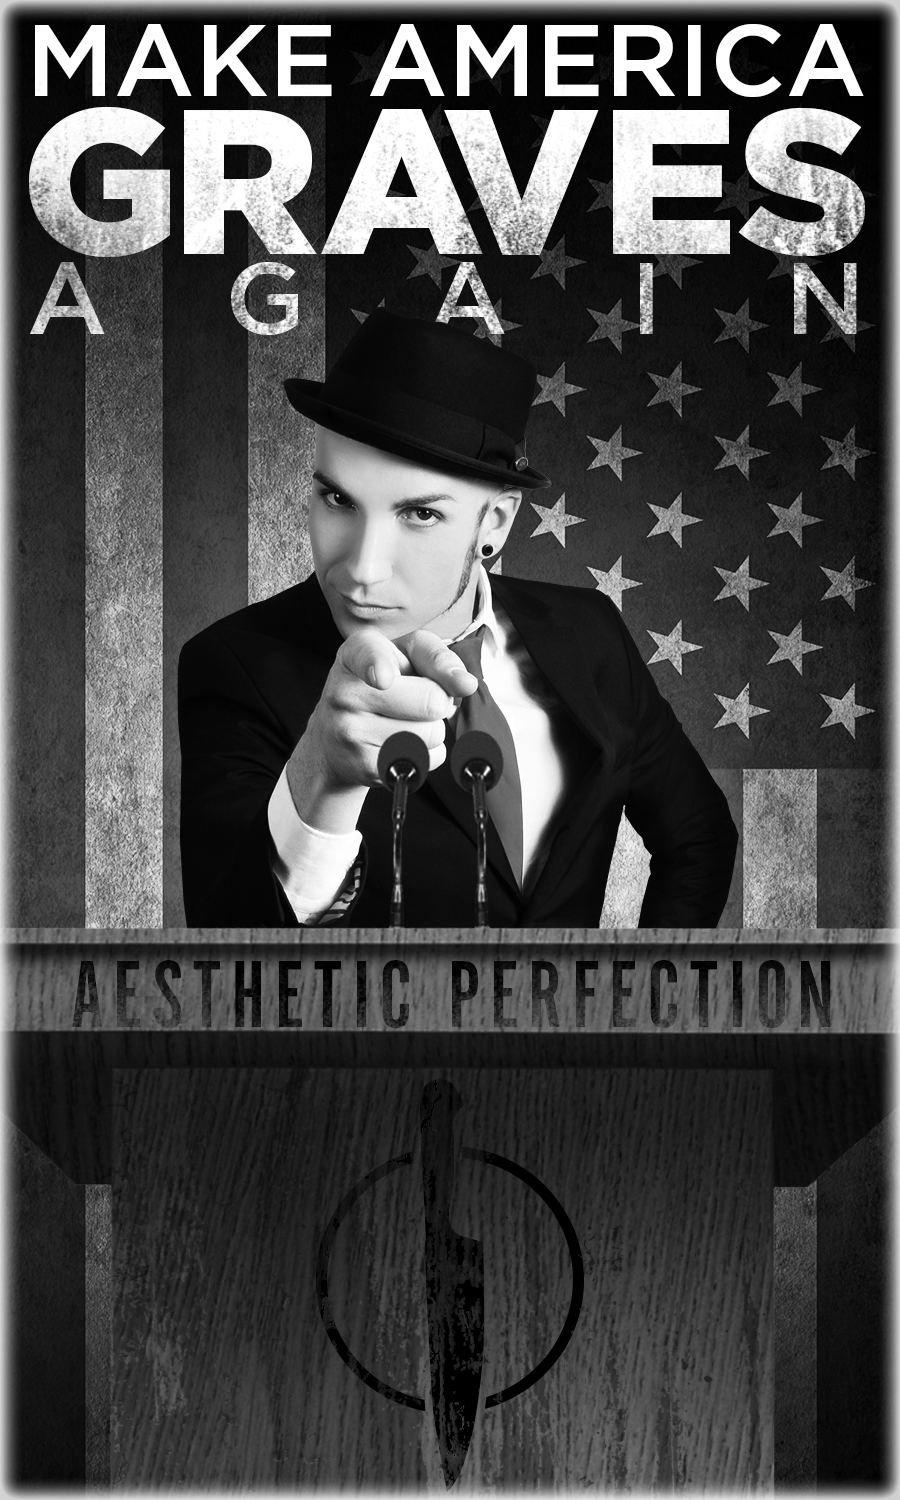 Aesthetic Perfection Make America Graves Again Sticker